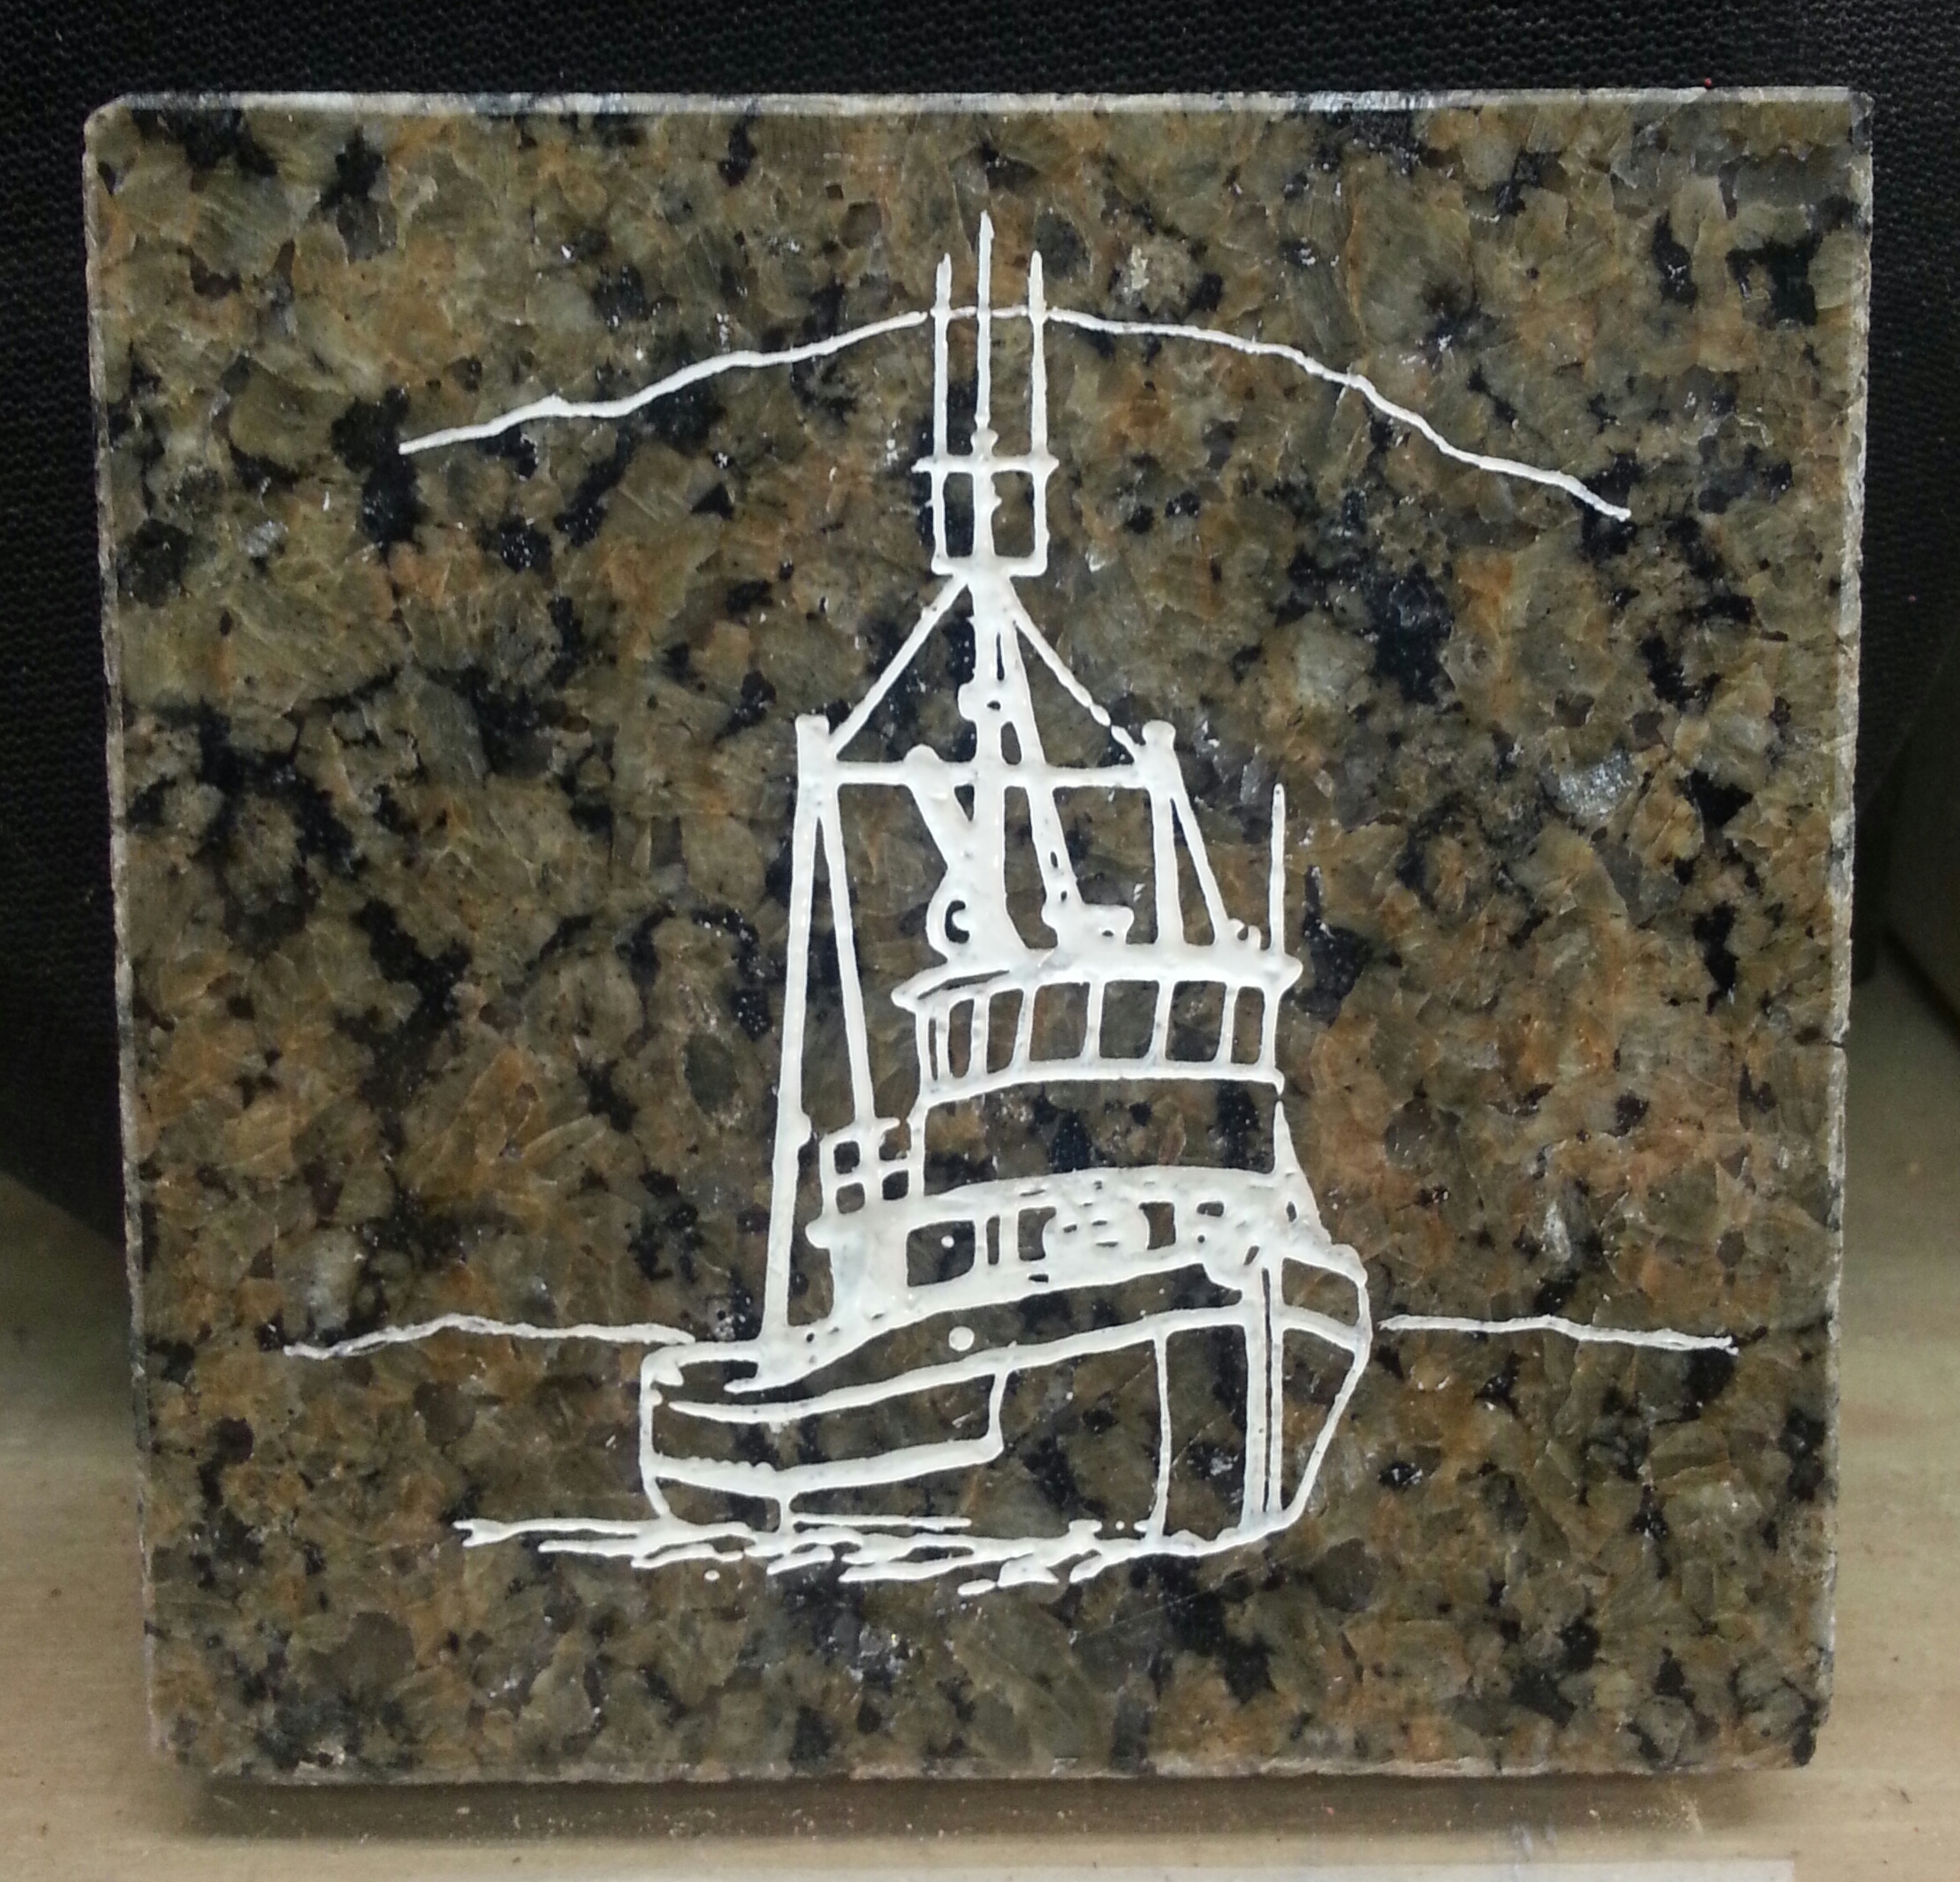 Hand engraved Seine boat on a 4x4 granite coffee coaster... not a cheap laser imitation... $25.00